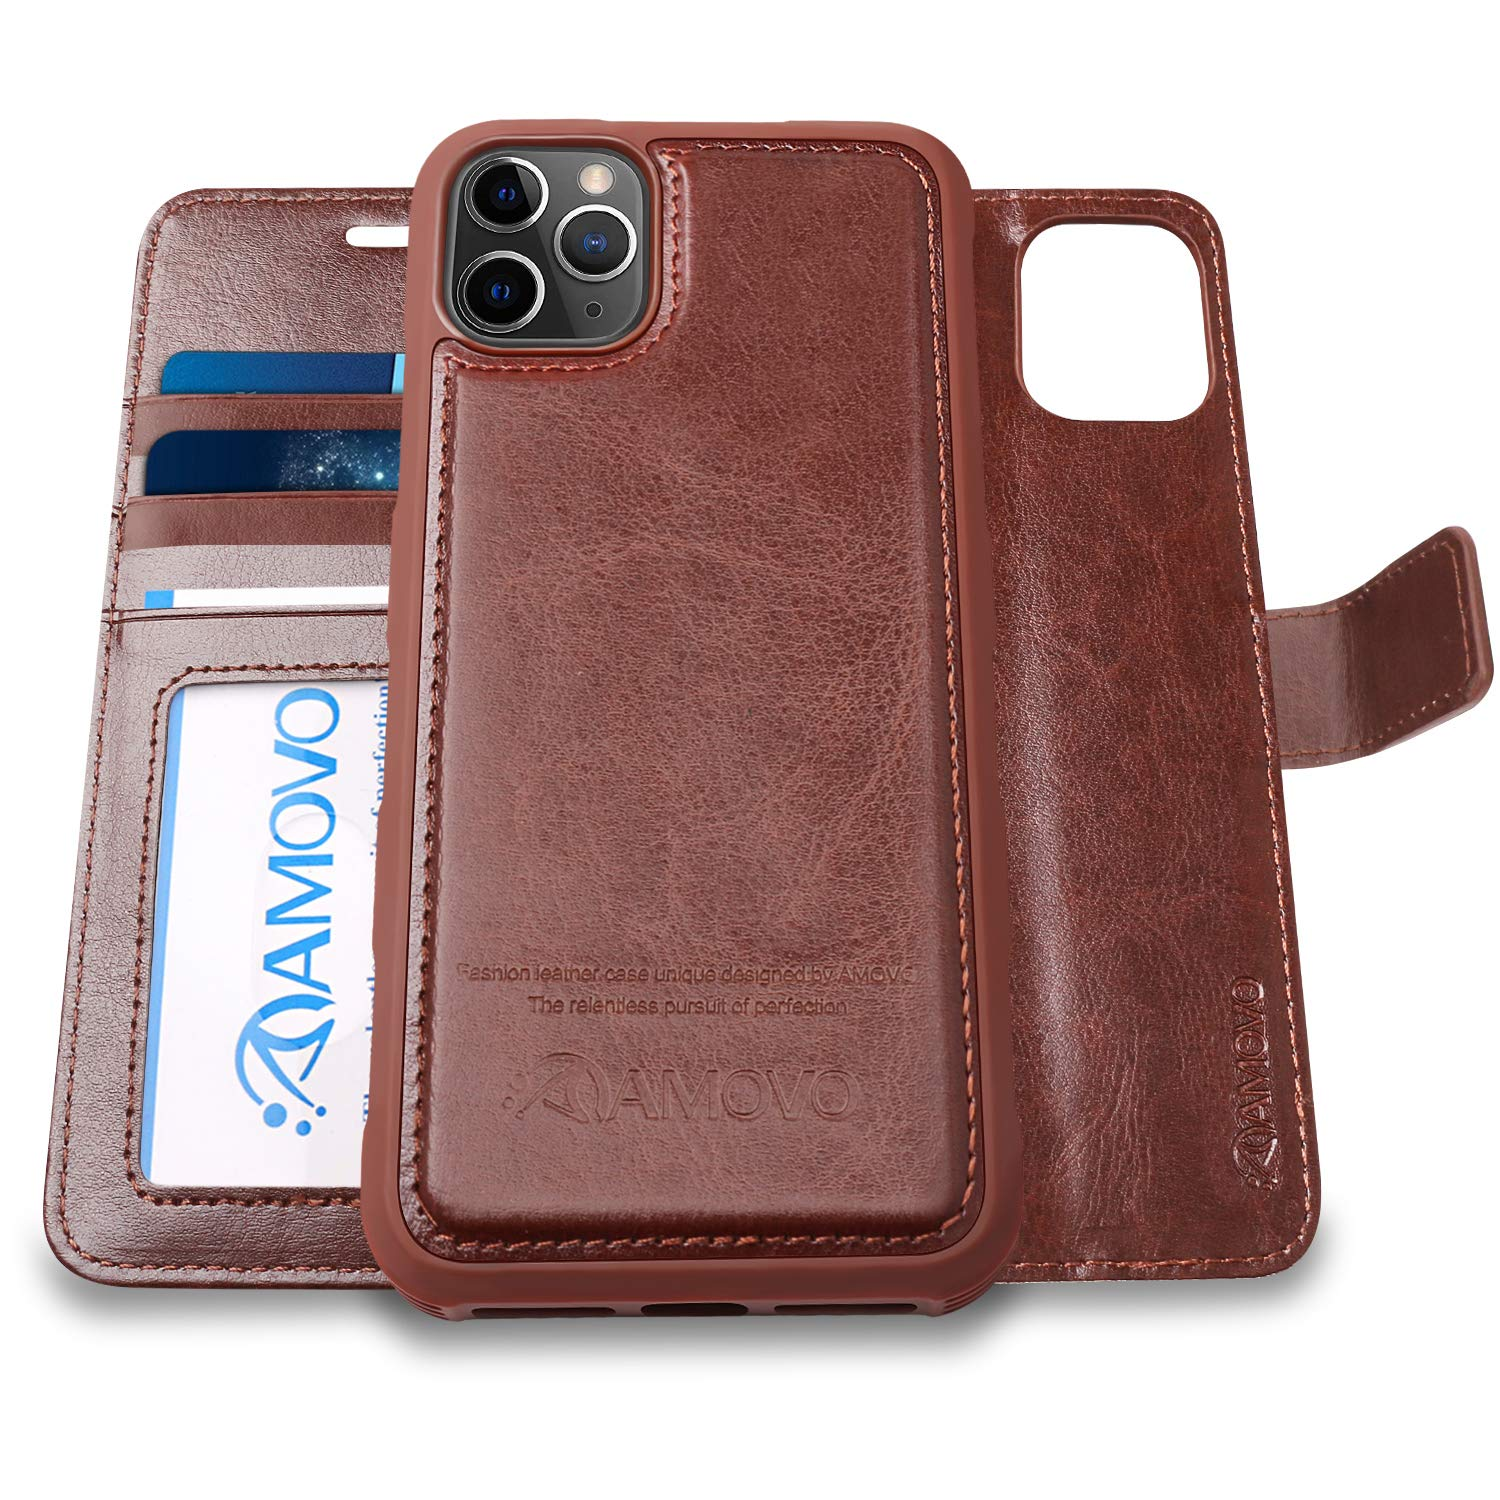 AMOVO iPhone 11 Pro Max Wallet Case [2 in 1 Detachable] Vegan Leather Case  for iPhone 11 Pro Max (6.5\u0027\u0027) [Wristlet] [Kickstand] iPhone 11 Pro Max